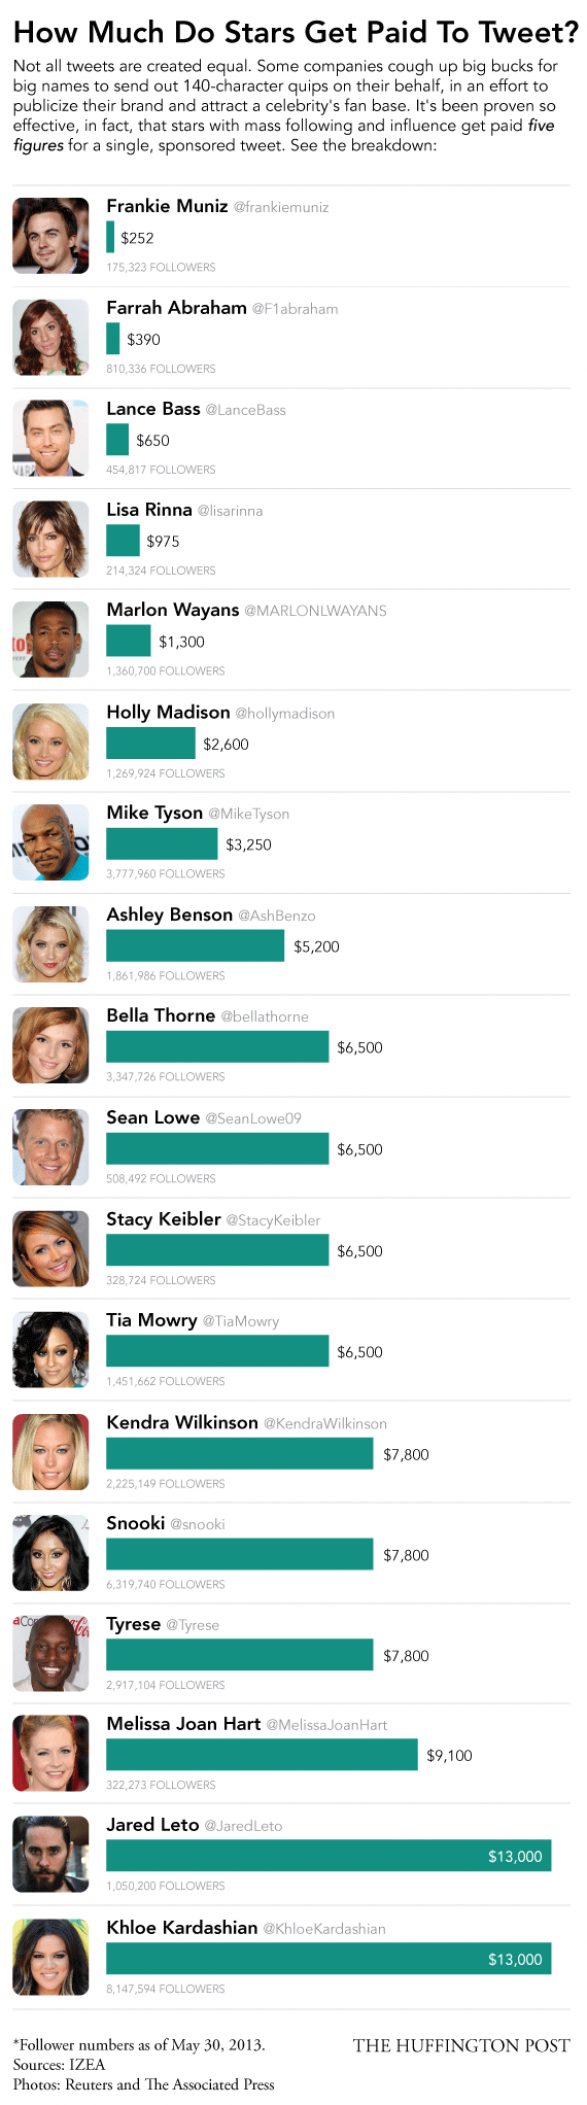 How Much 18 Different Celebrities Get Paid To TweetHow Much 18 Different Celebrities Get Paid To Tweet [INFOGRAPHIC]